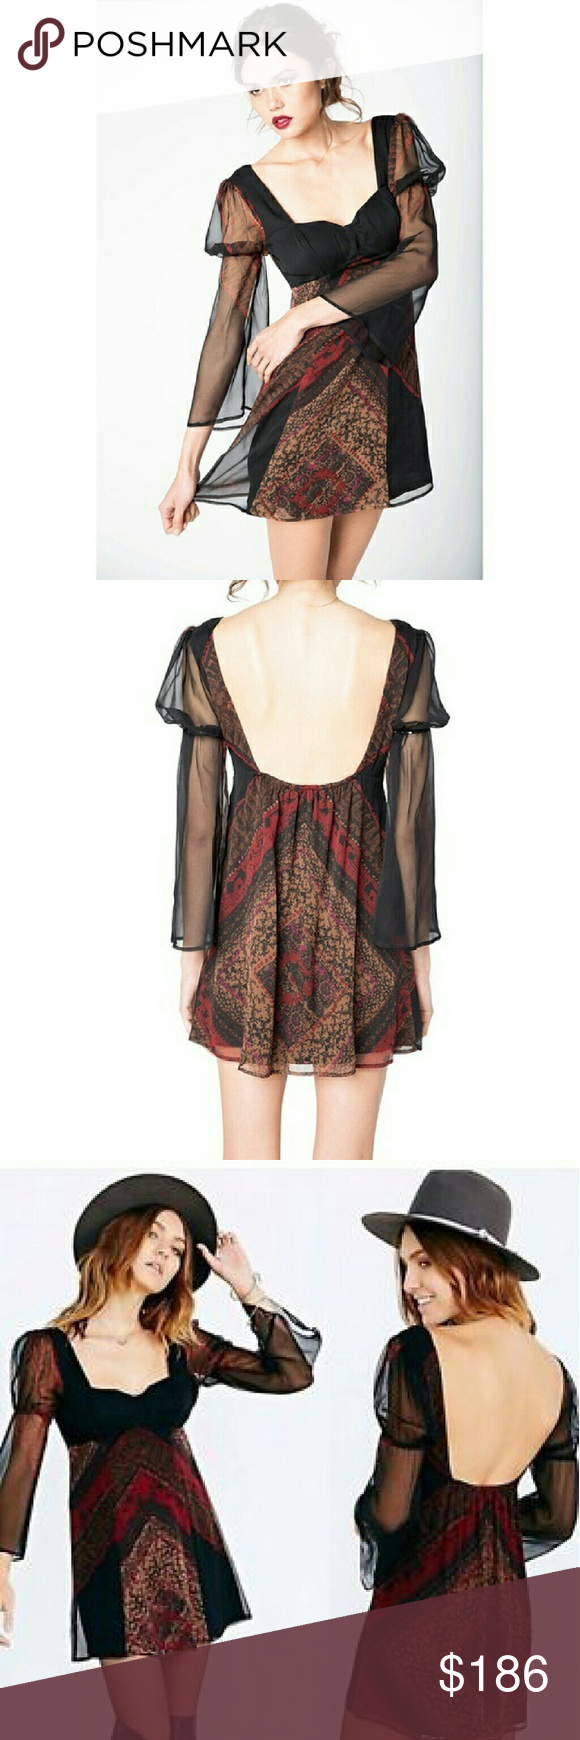 FINAL PRICE! NWOT Stone Cold Fox Montana dress NWOT. Stone cold fox Montana dress. Perfect paired with otk black suede boots for Fall! ?? Size 1 which is equivalent to a S.  Details   -Unique chiffon mini-dress in Violante print  - Slight sweetheart neckline with structured, built-in bust padding  - Flared, long sleeves of sheer chiffon feature an elastic detail  - Fully lined with washed crepe  - A low, square-cut back has elastic between the shoulders  - Body: 100% silk Chiffon  - Lining…